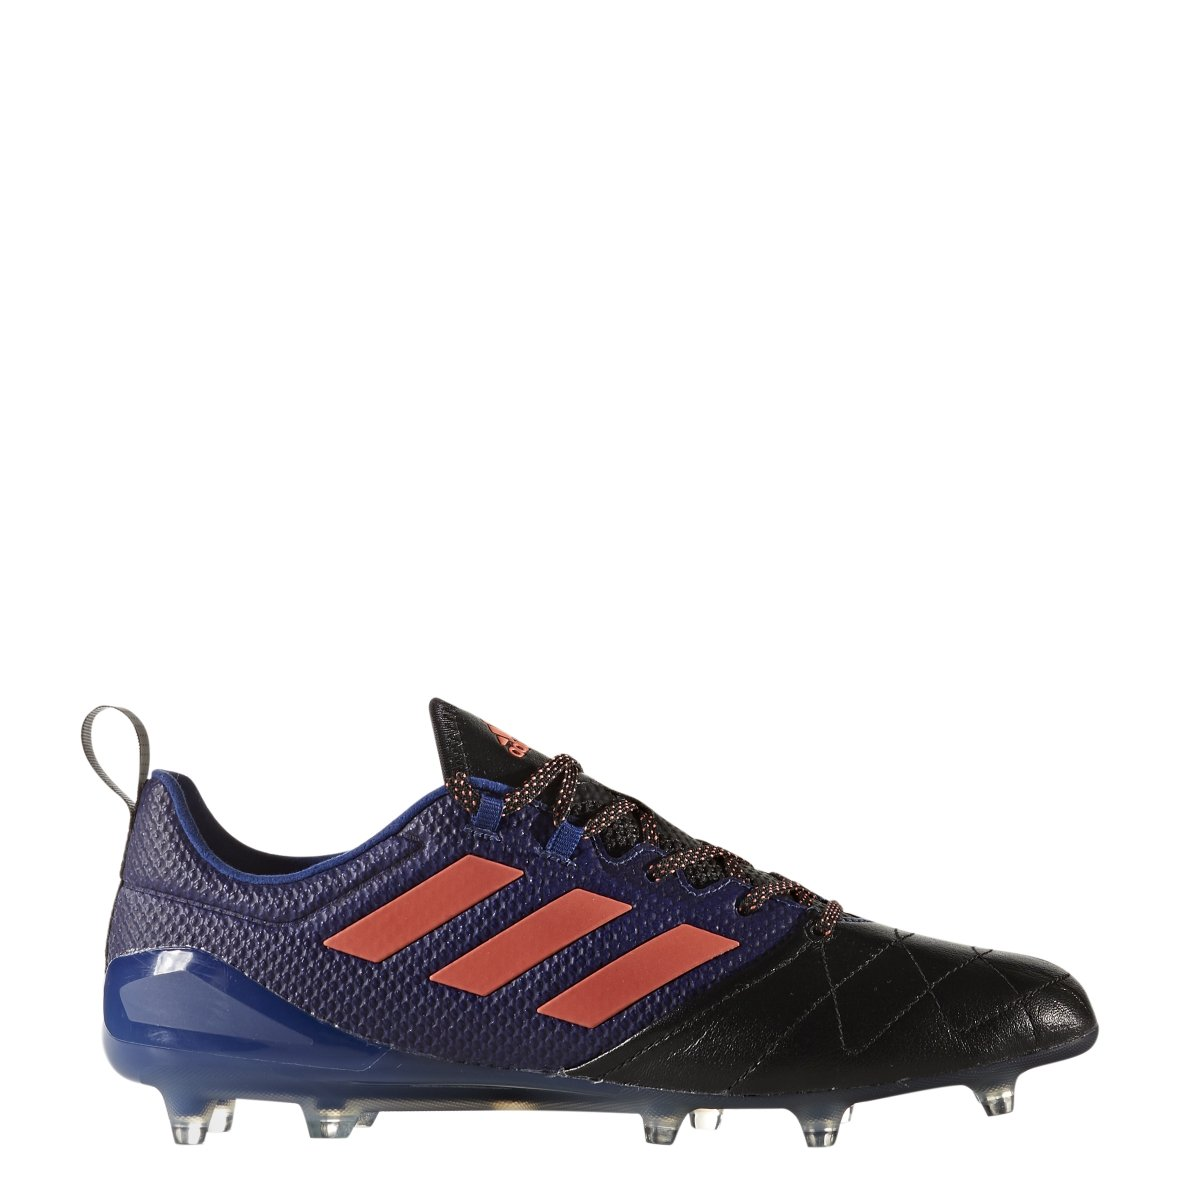 adidas Ace 17.1 FG Women's Mystery Ink, Size 7